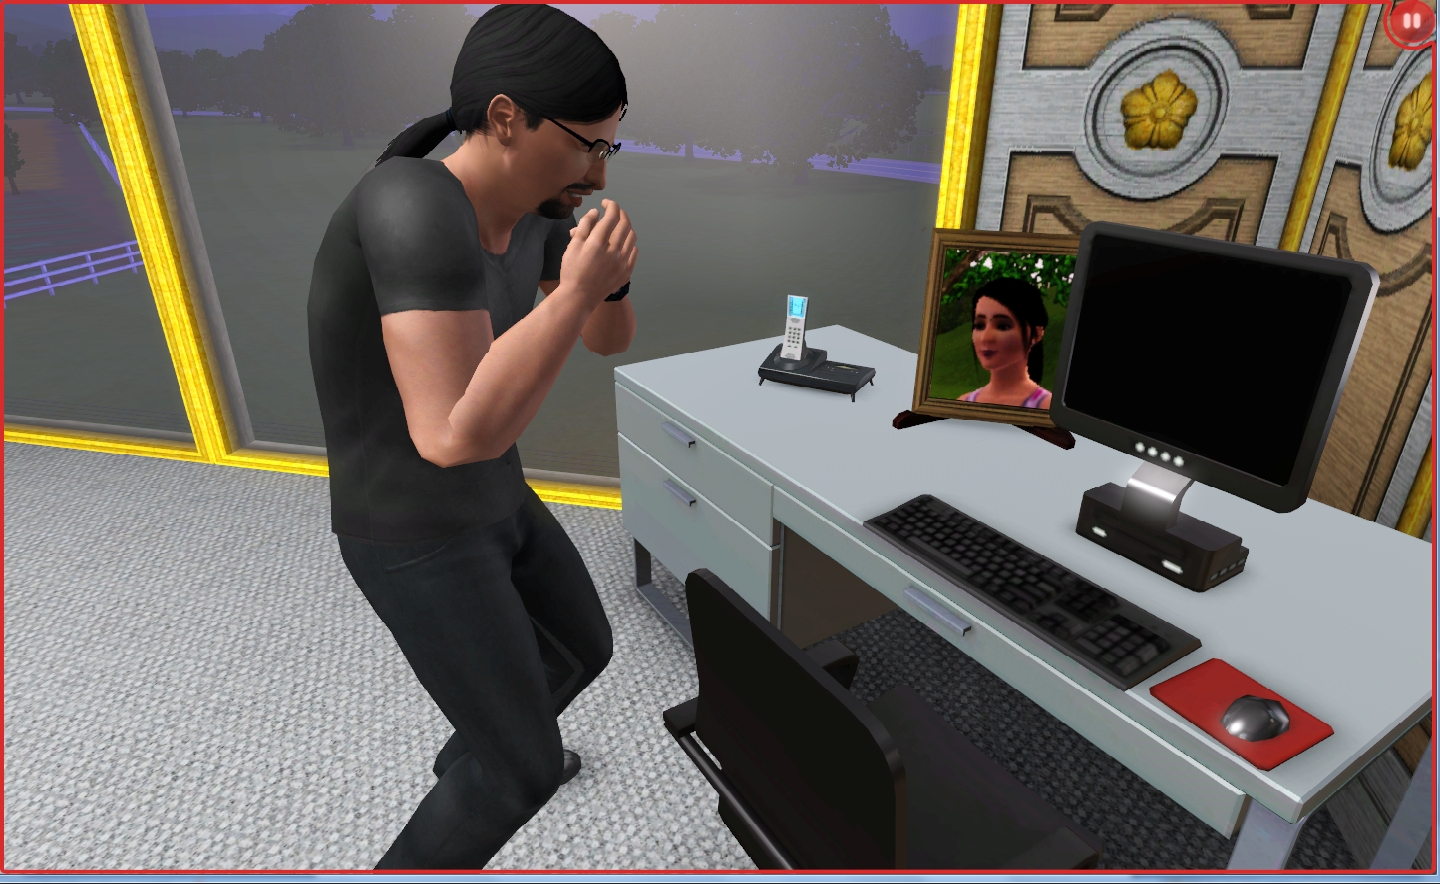 The Sims 3: Ambitions - pc - Walkthrough and Guide - Page 4 - GameSpy